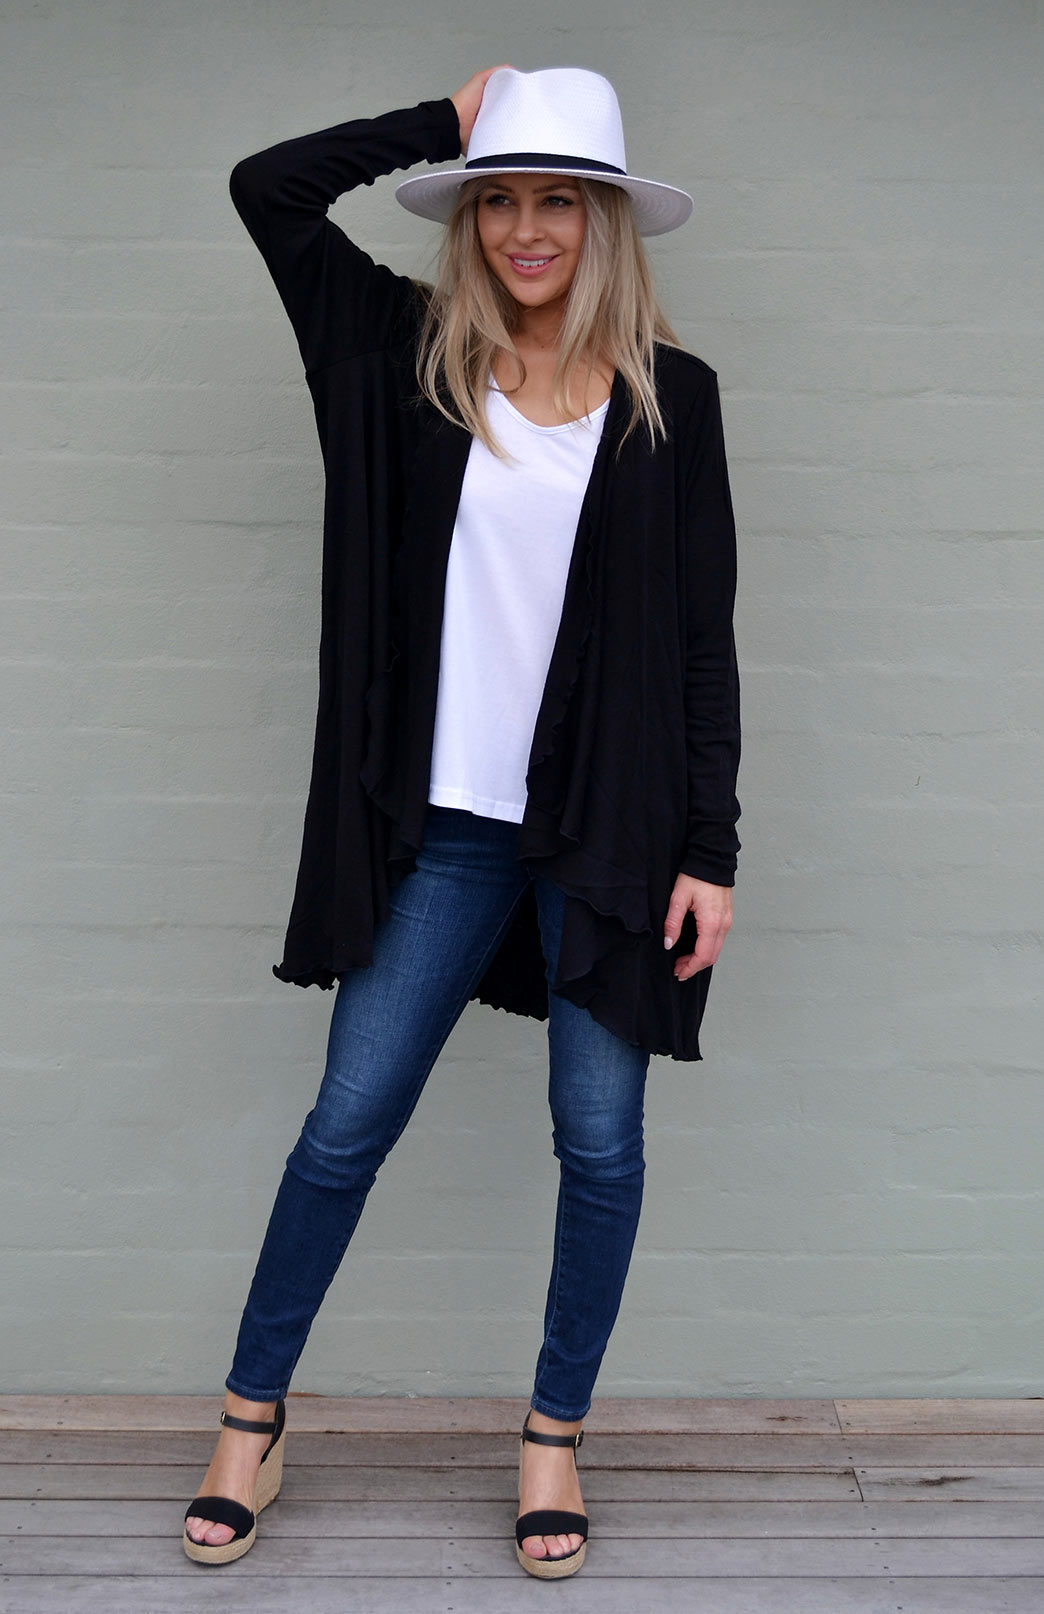 Swing Cardigan - Women's Black Long Sleeved Wrap Around Merino Wool Swing Cardigan - Smitten Merino Tasmania Australia